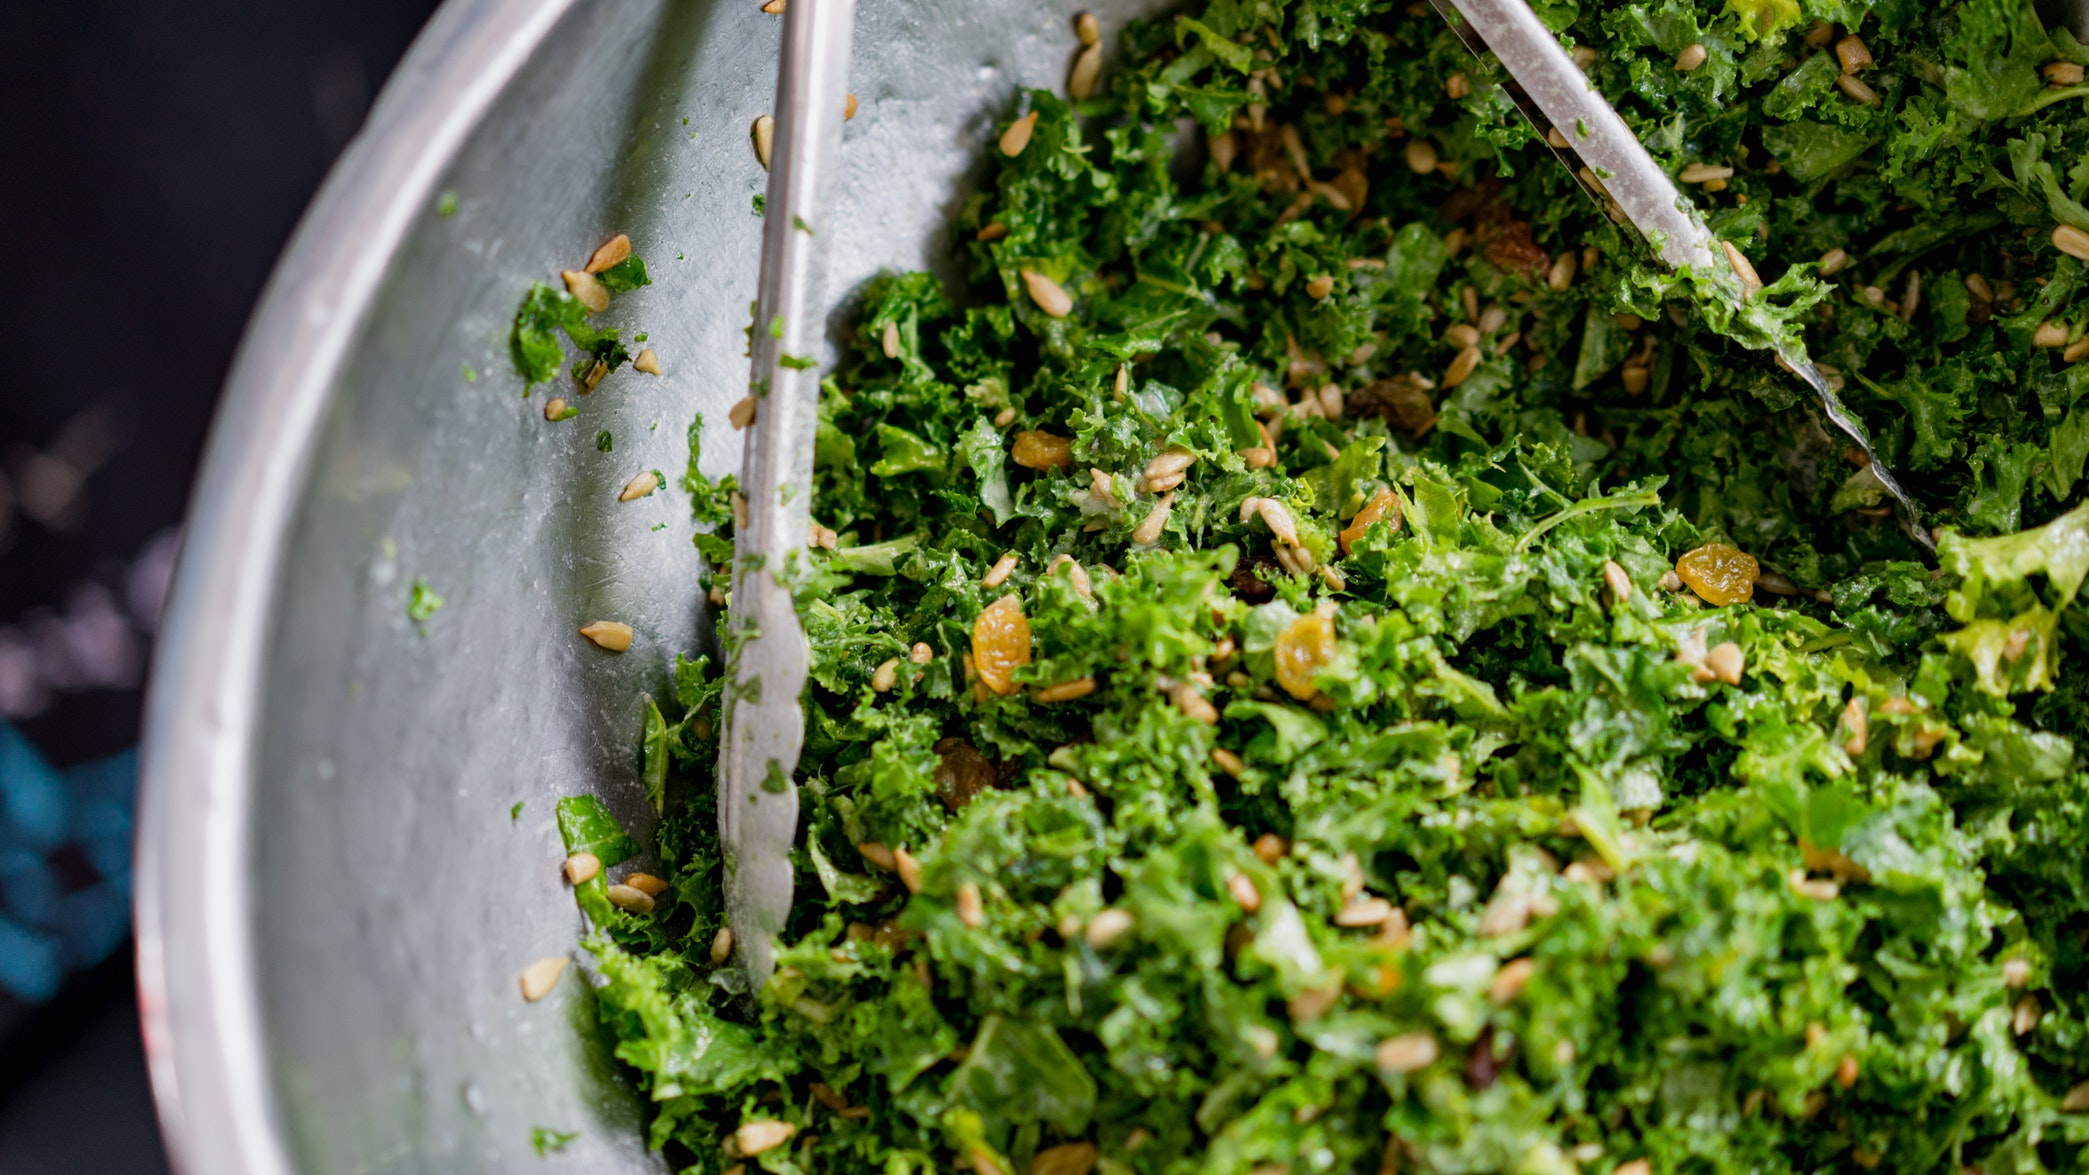 Kale is great for caesar salads. Other lettuces tend to be too delicate for the thick, creamy dressing featured in this recipe. Feel free to add bulk to the finished product with sweet and salty toppings. Dried fruit, toasted nuts, and roasted chickpeas fit in nicely.